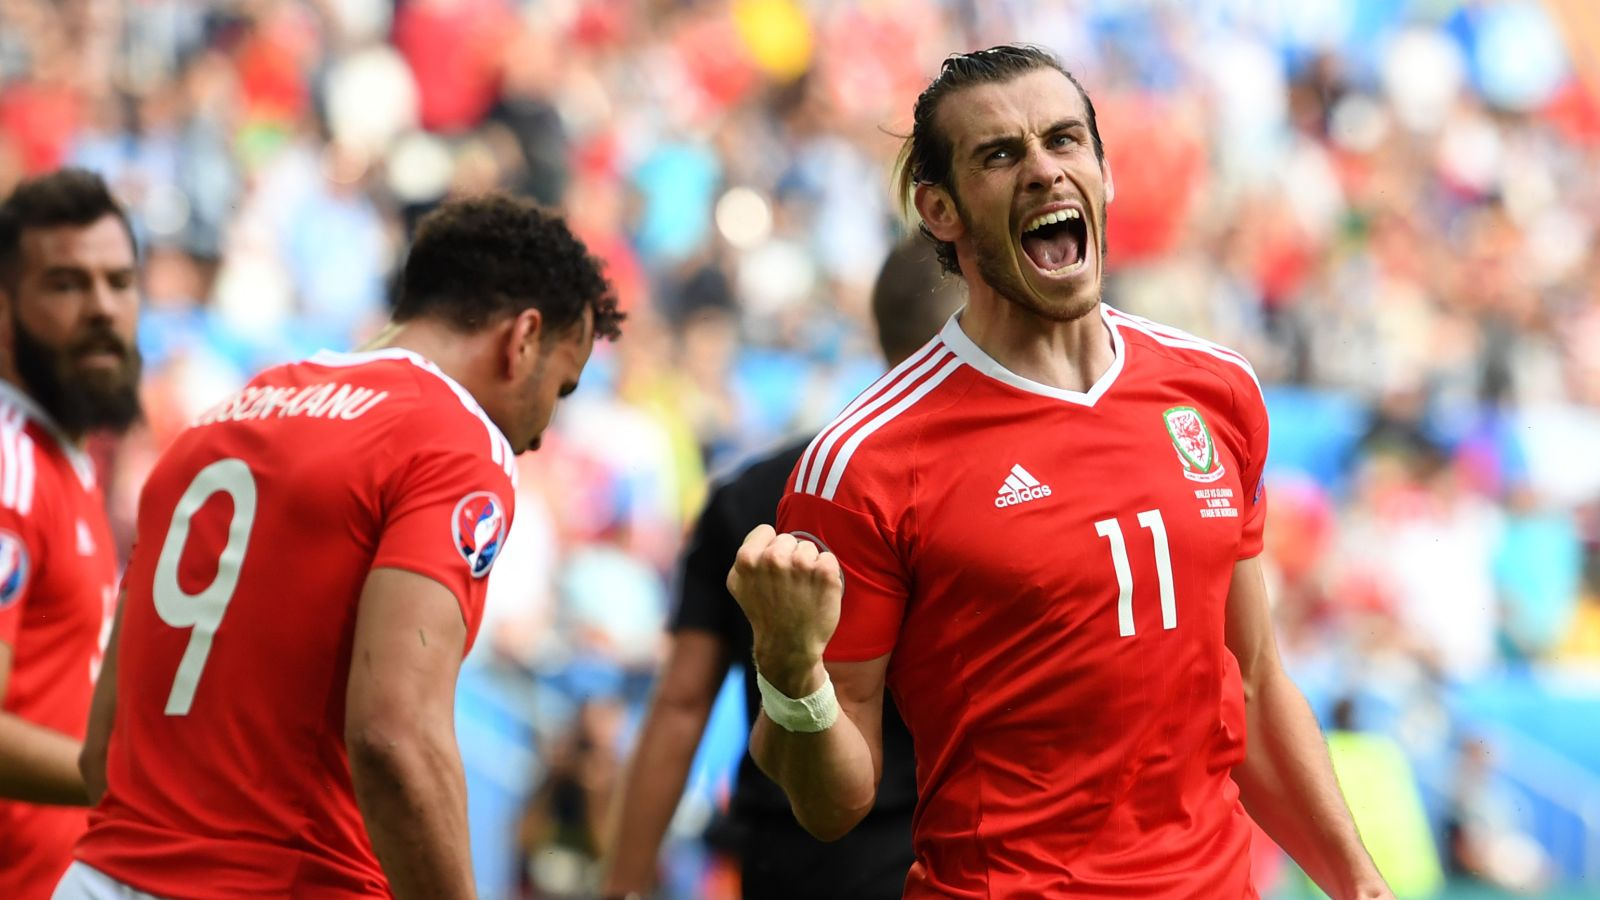 England boss Hodgson hits back at Bale over 'disrespectful' comments